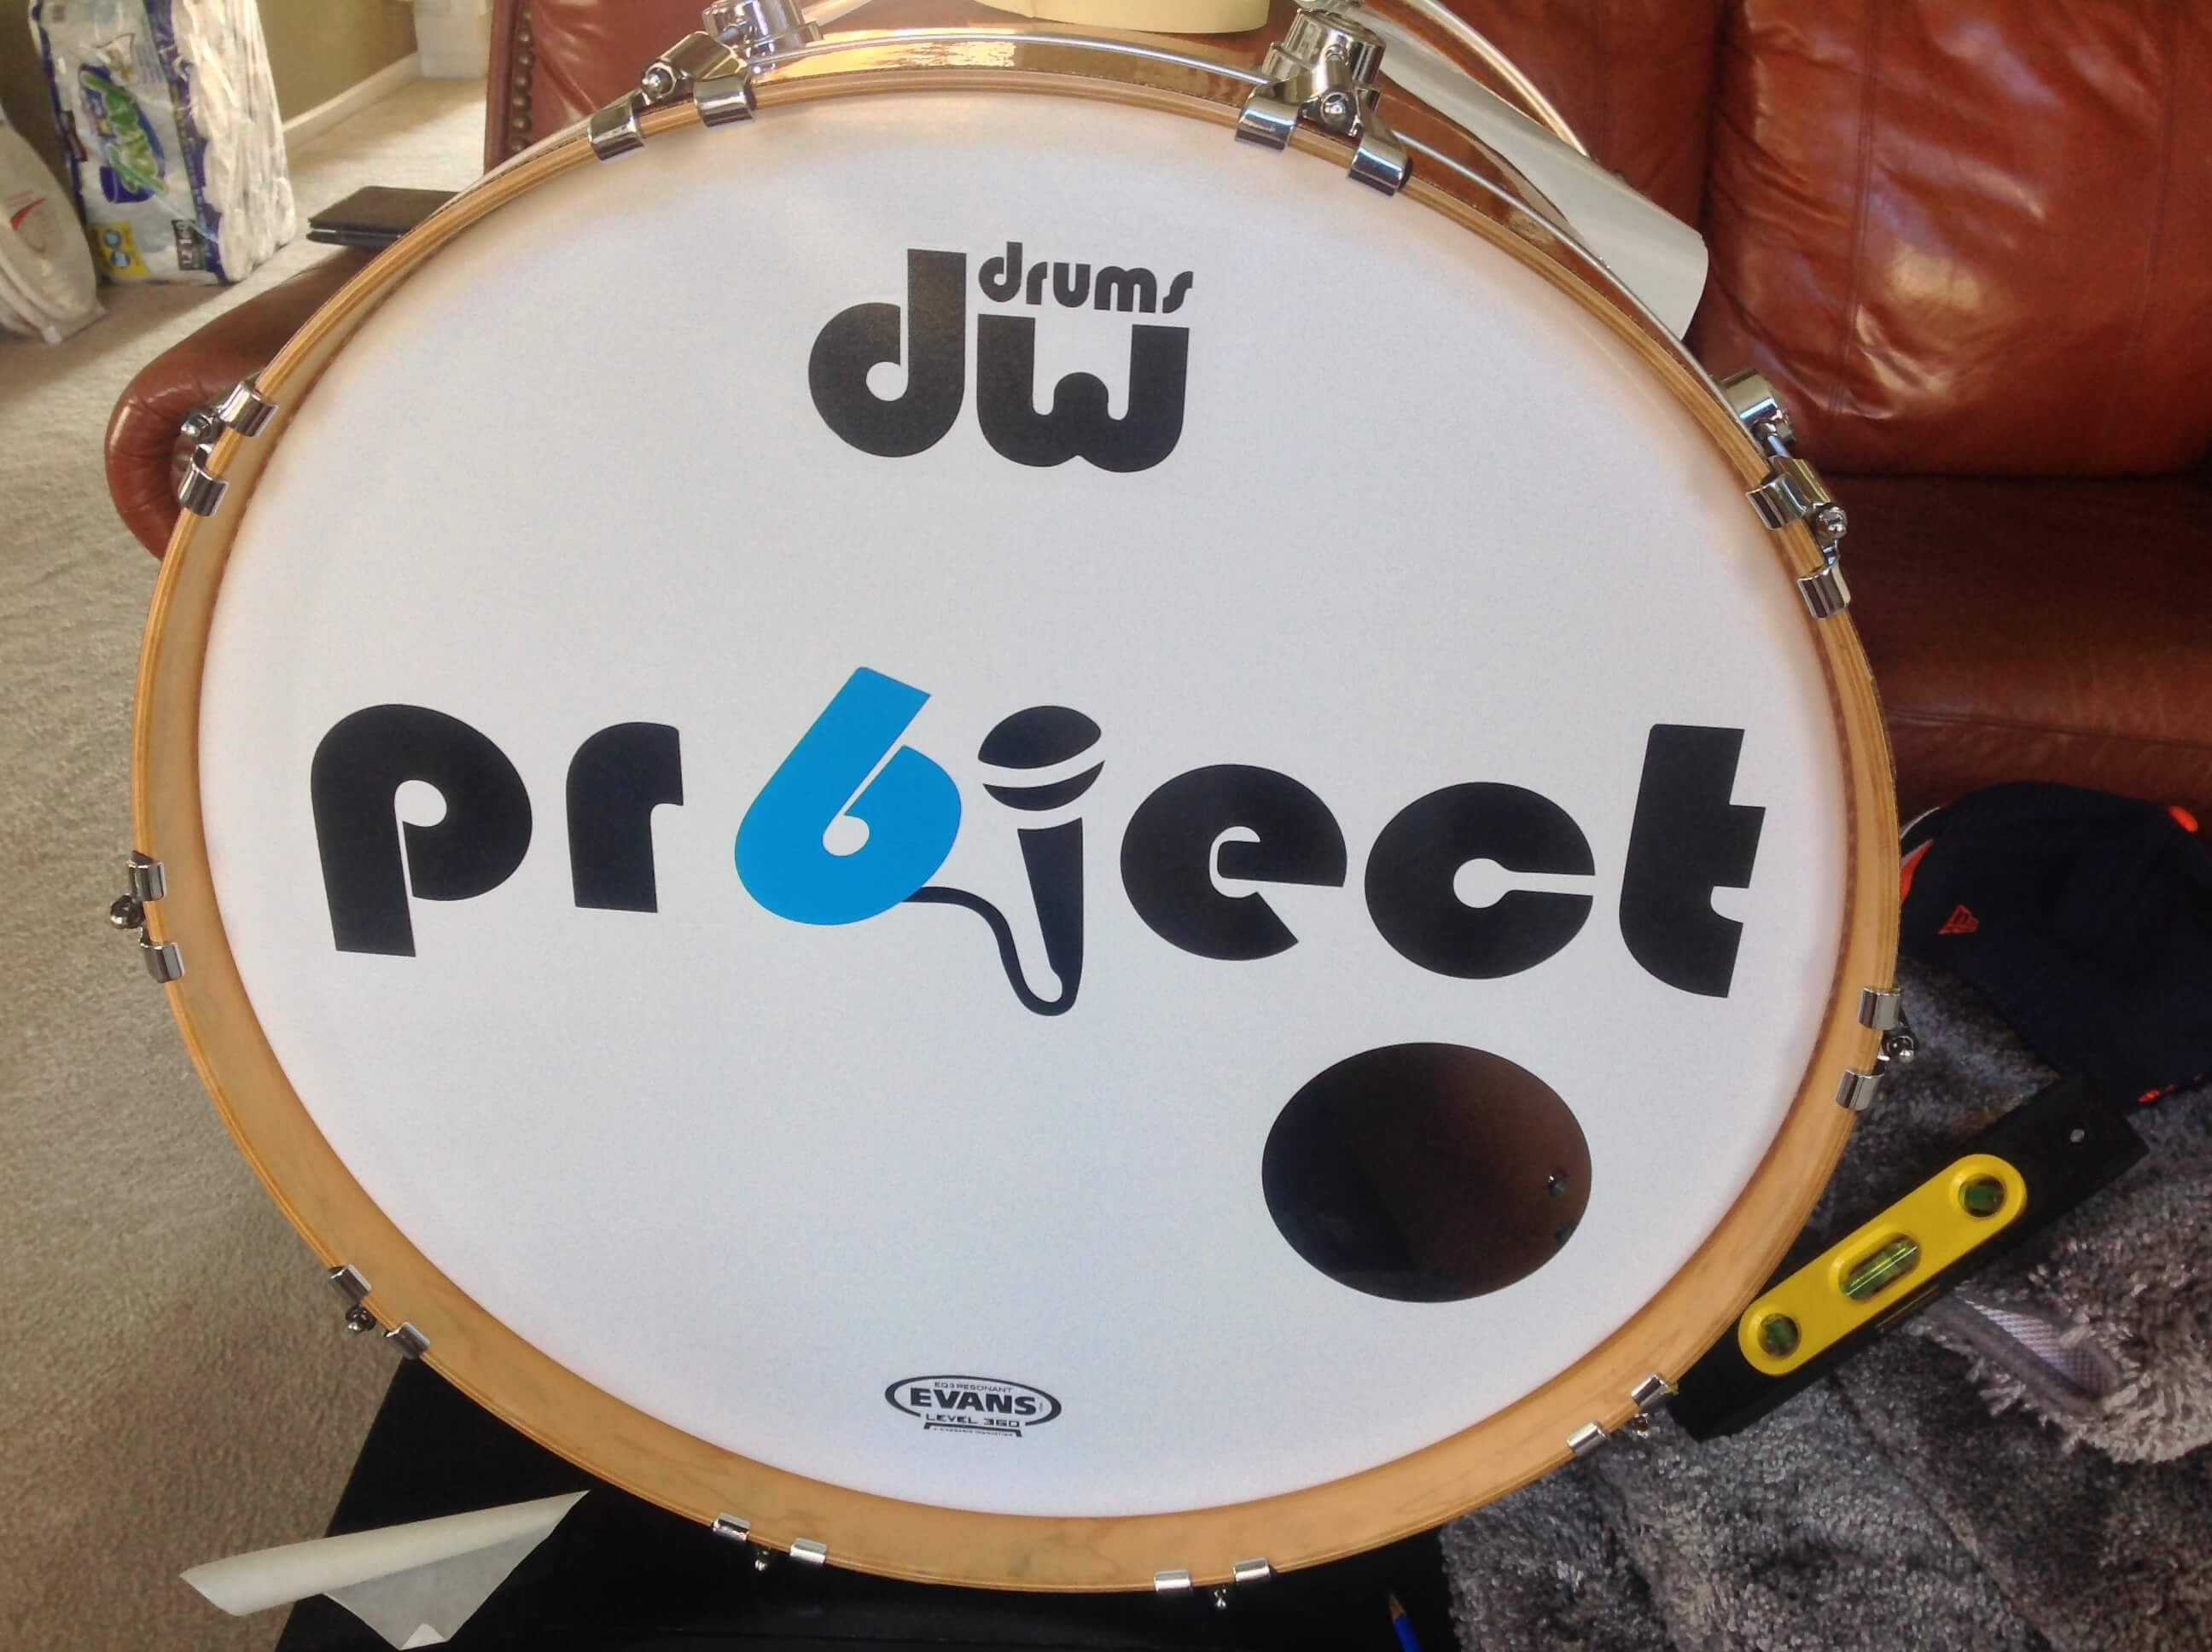 Project 6, drum decal, kick drum decals, drum stickers, custom, great prices, die-cut, die cut vinyl decals, music band, promotion